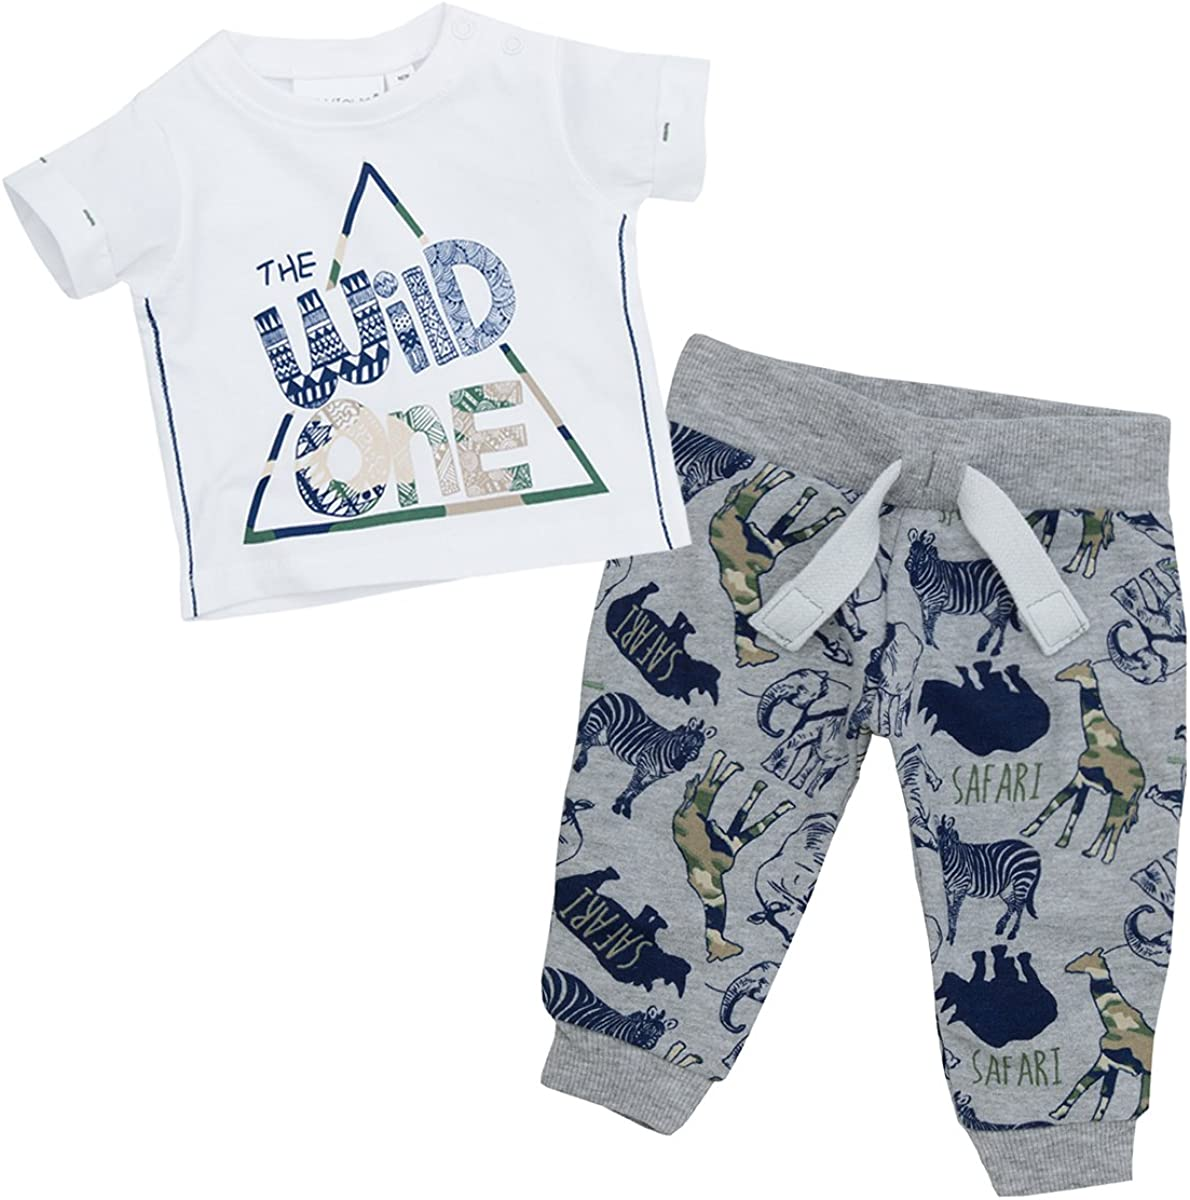 Babytown Baby Boys Safari Themed T Shirt Top /& Jog Pants Set